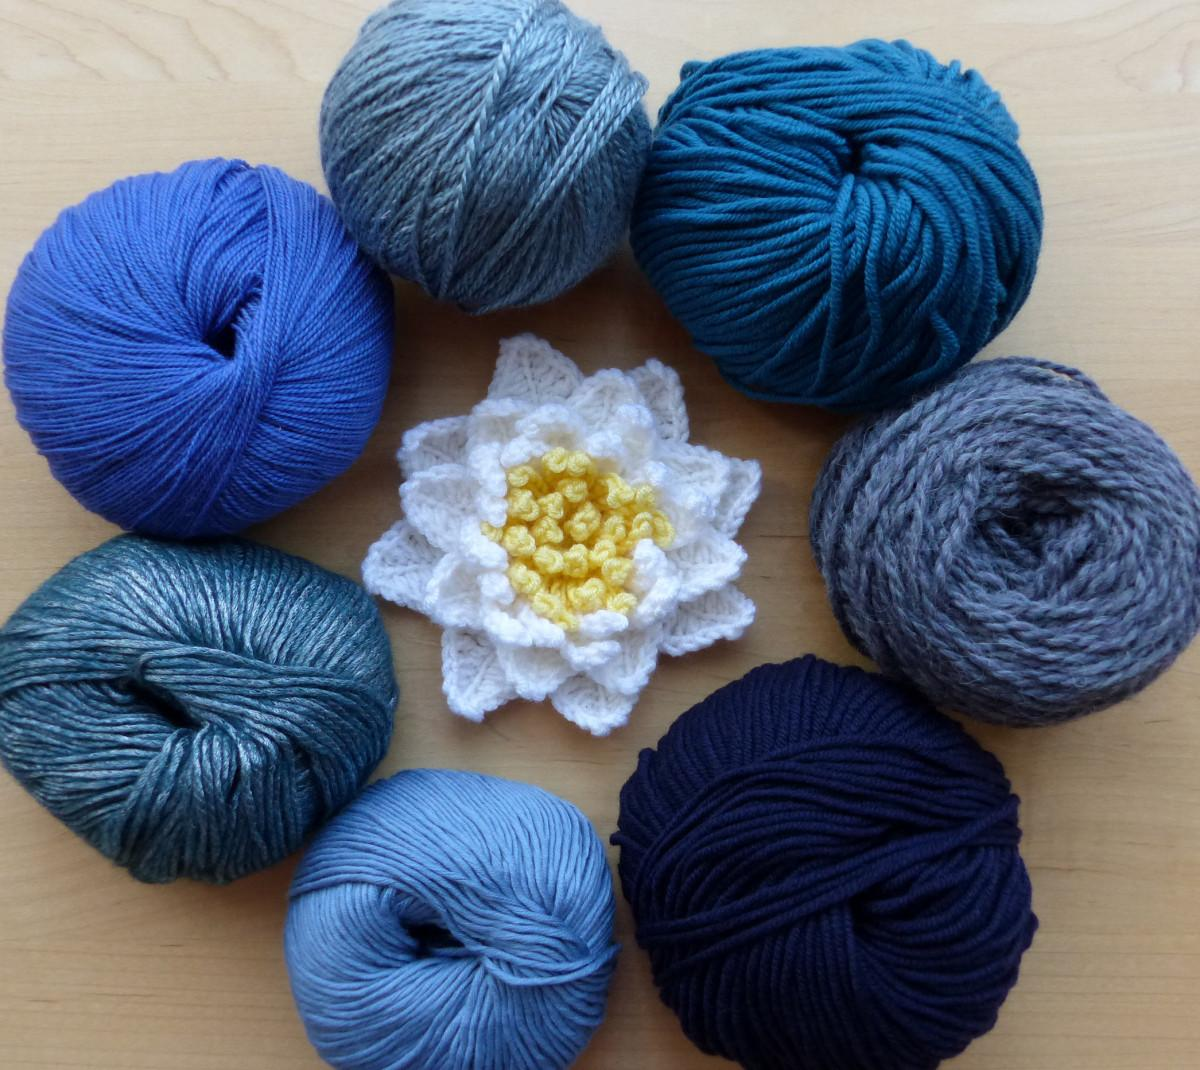 Design Crochet Patterns Part Selecting Yarn